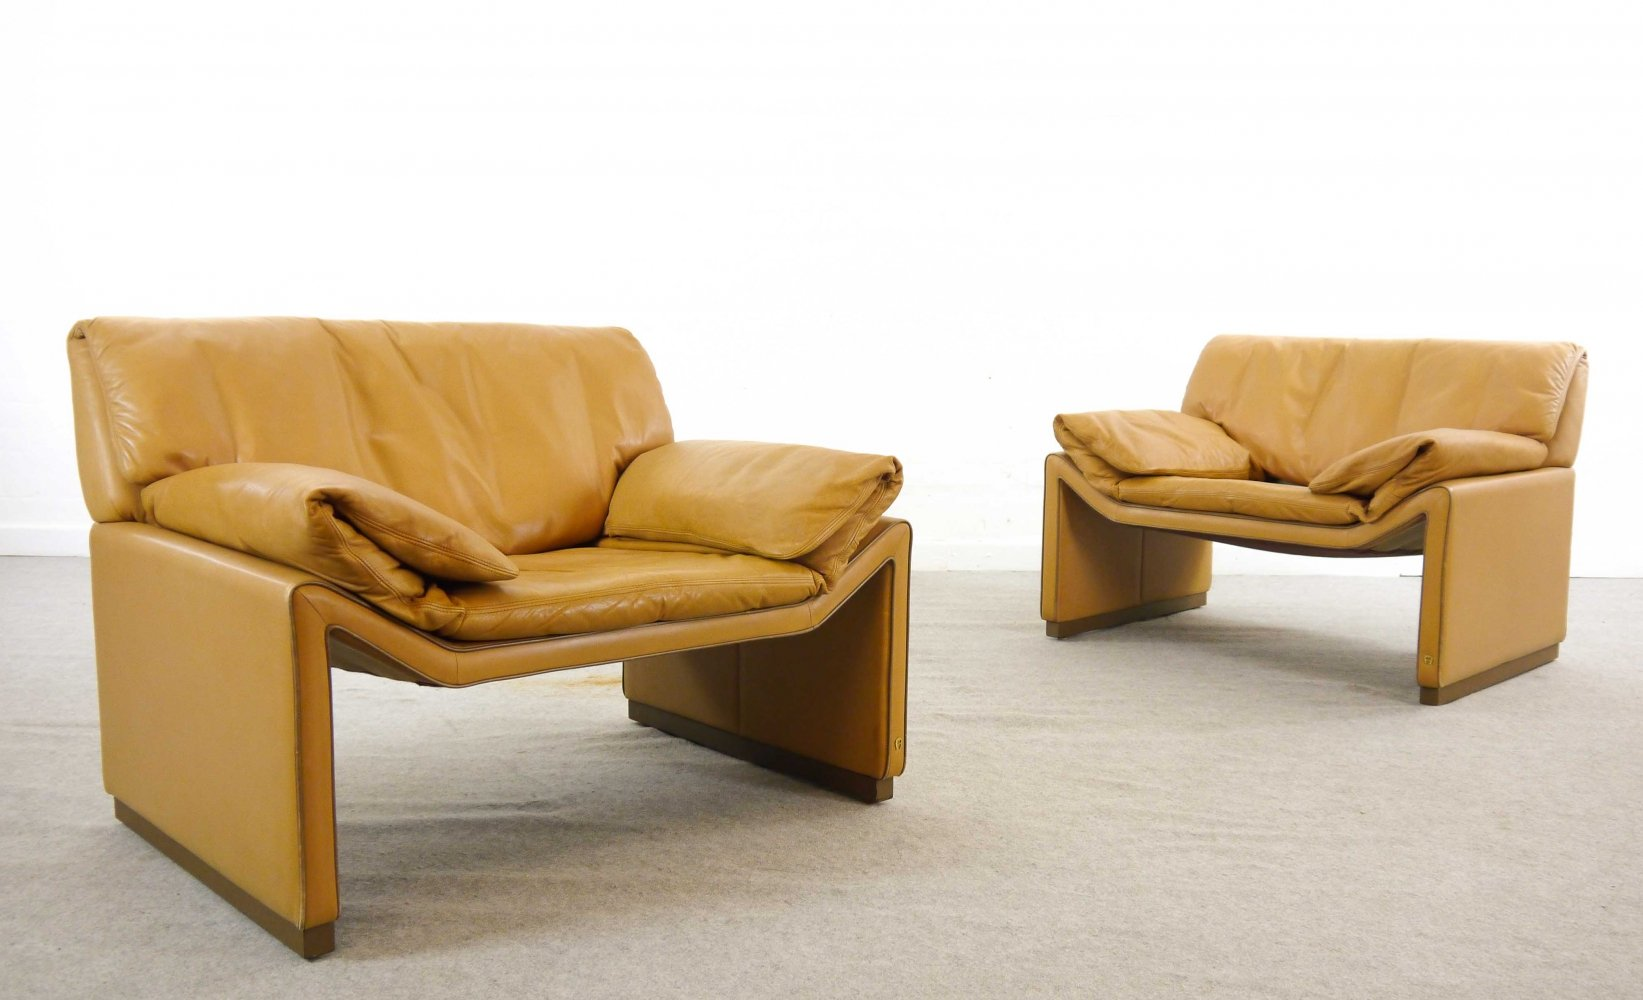 Pair of Etienne Aigner lounge chairs, 1980s